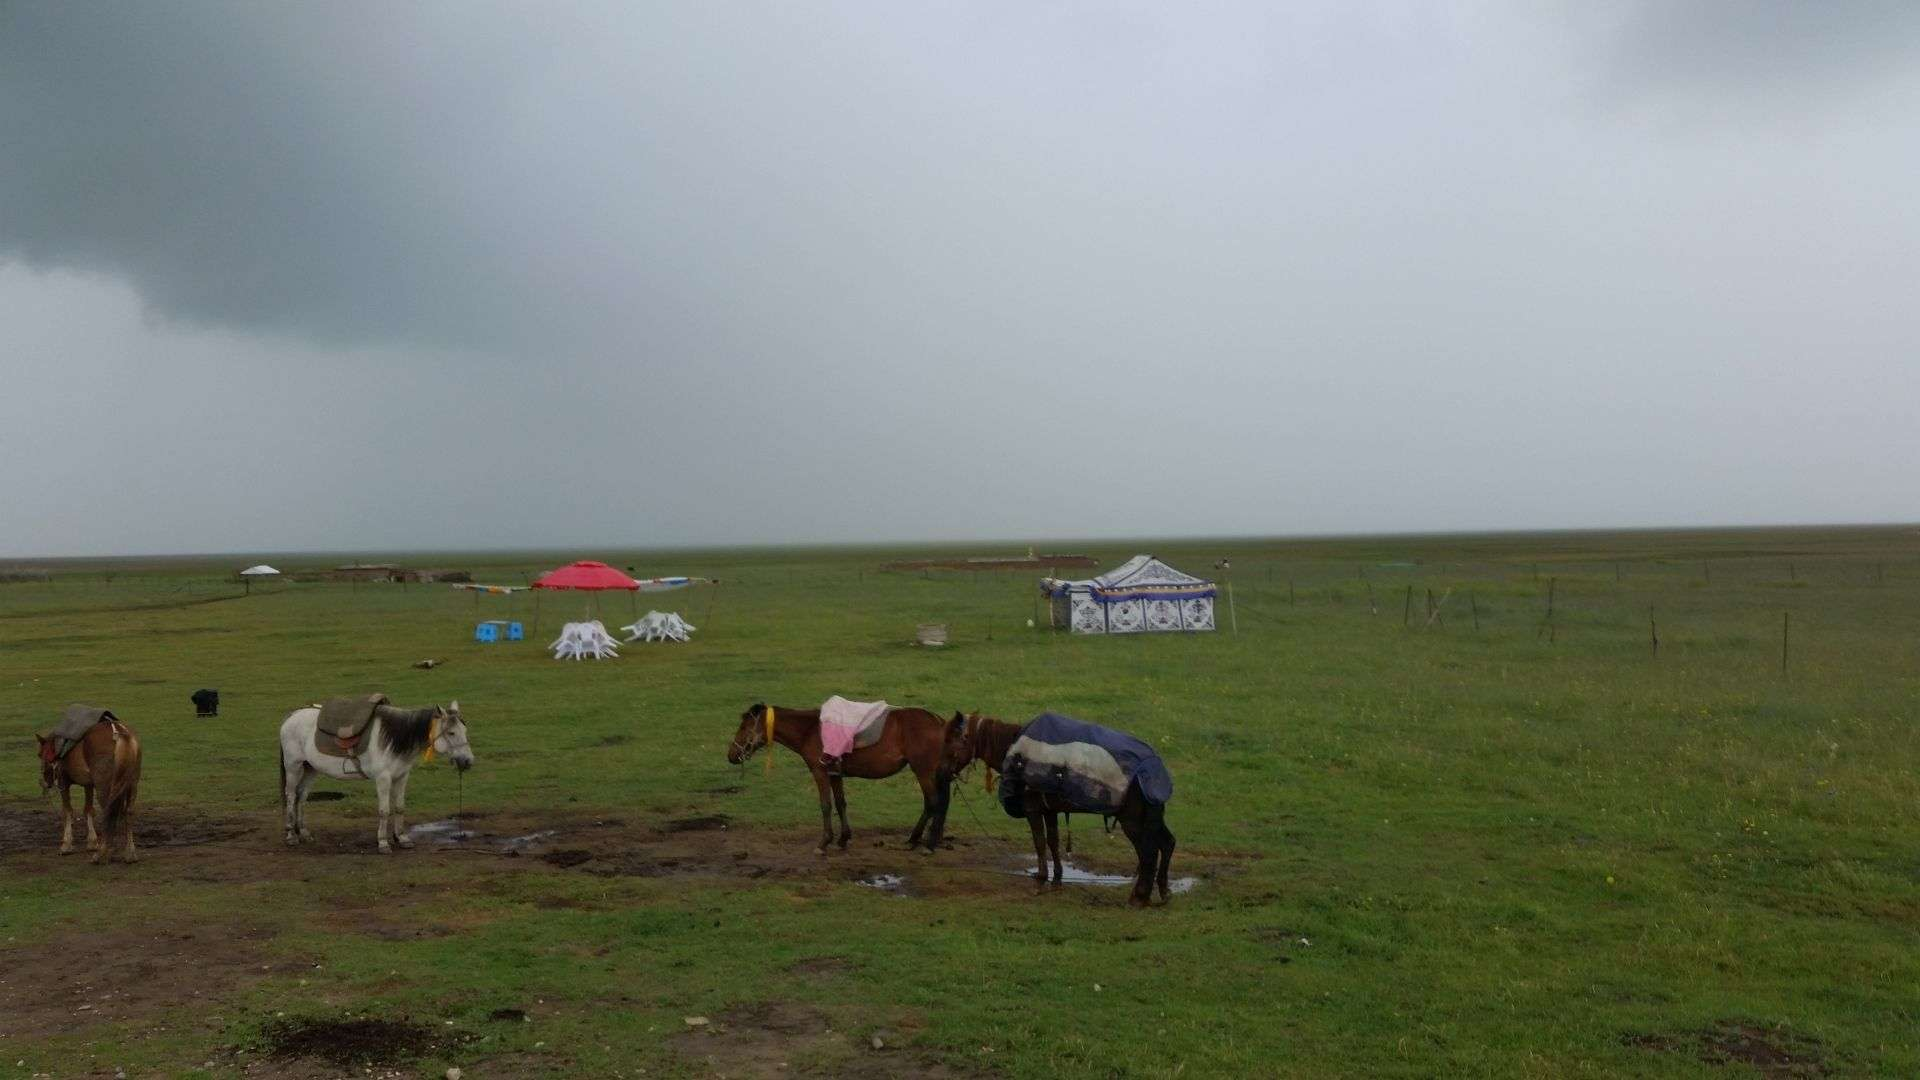 Yurts and horses in Zoige Grassland